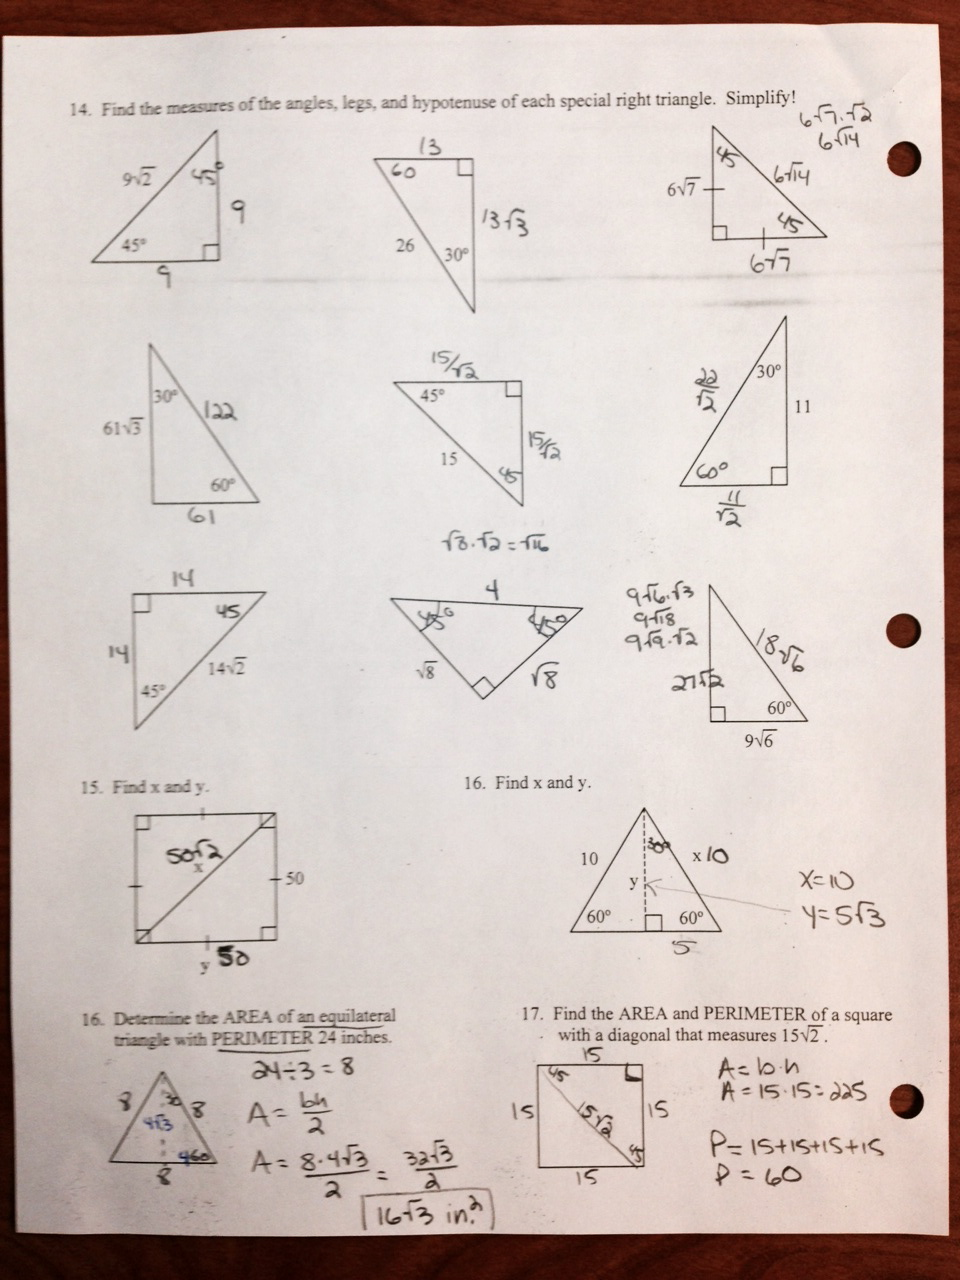 Worksheets Answers To Geometry Worksheets geometry worksheet answers free worksheets library download and angle bisectors with answers